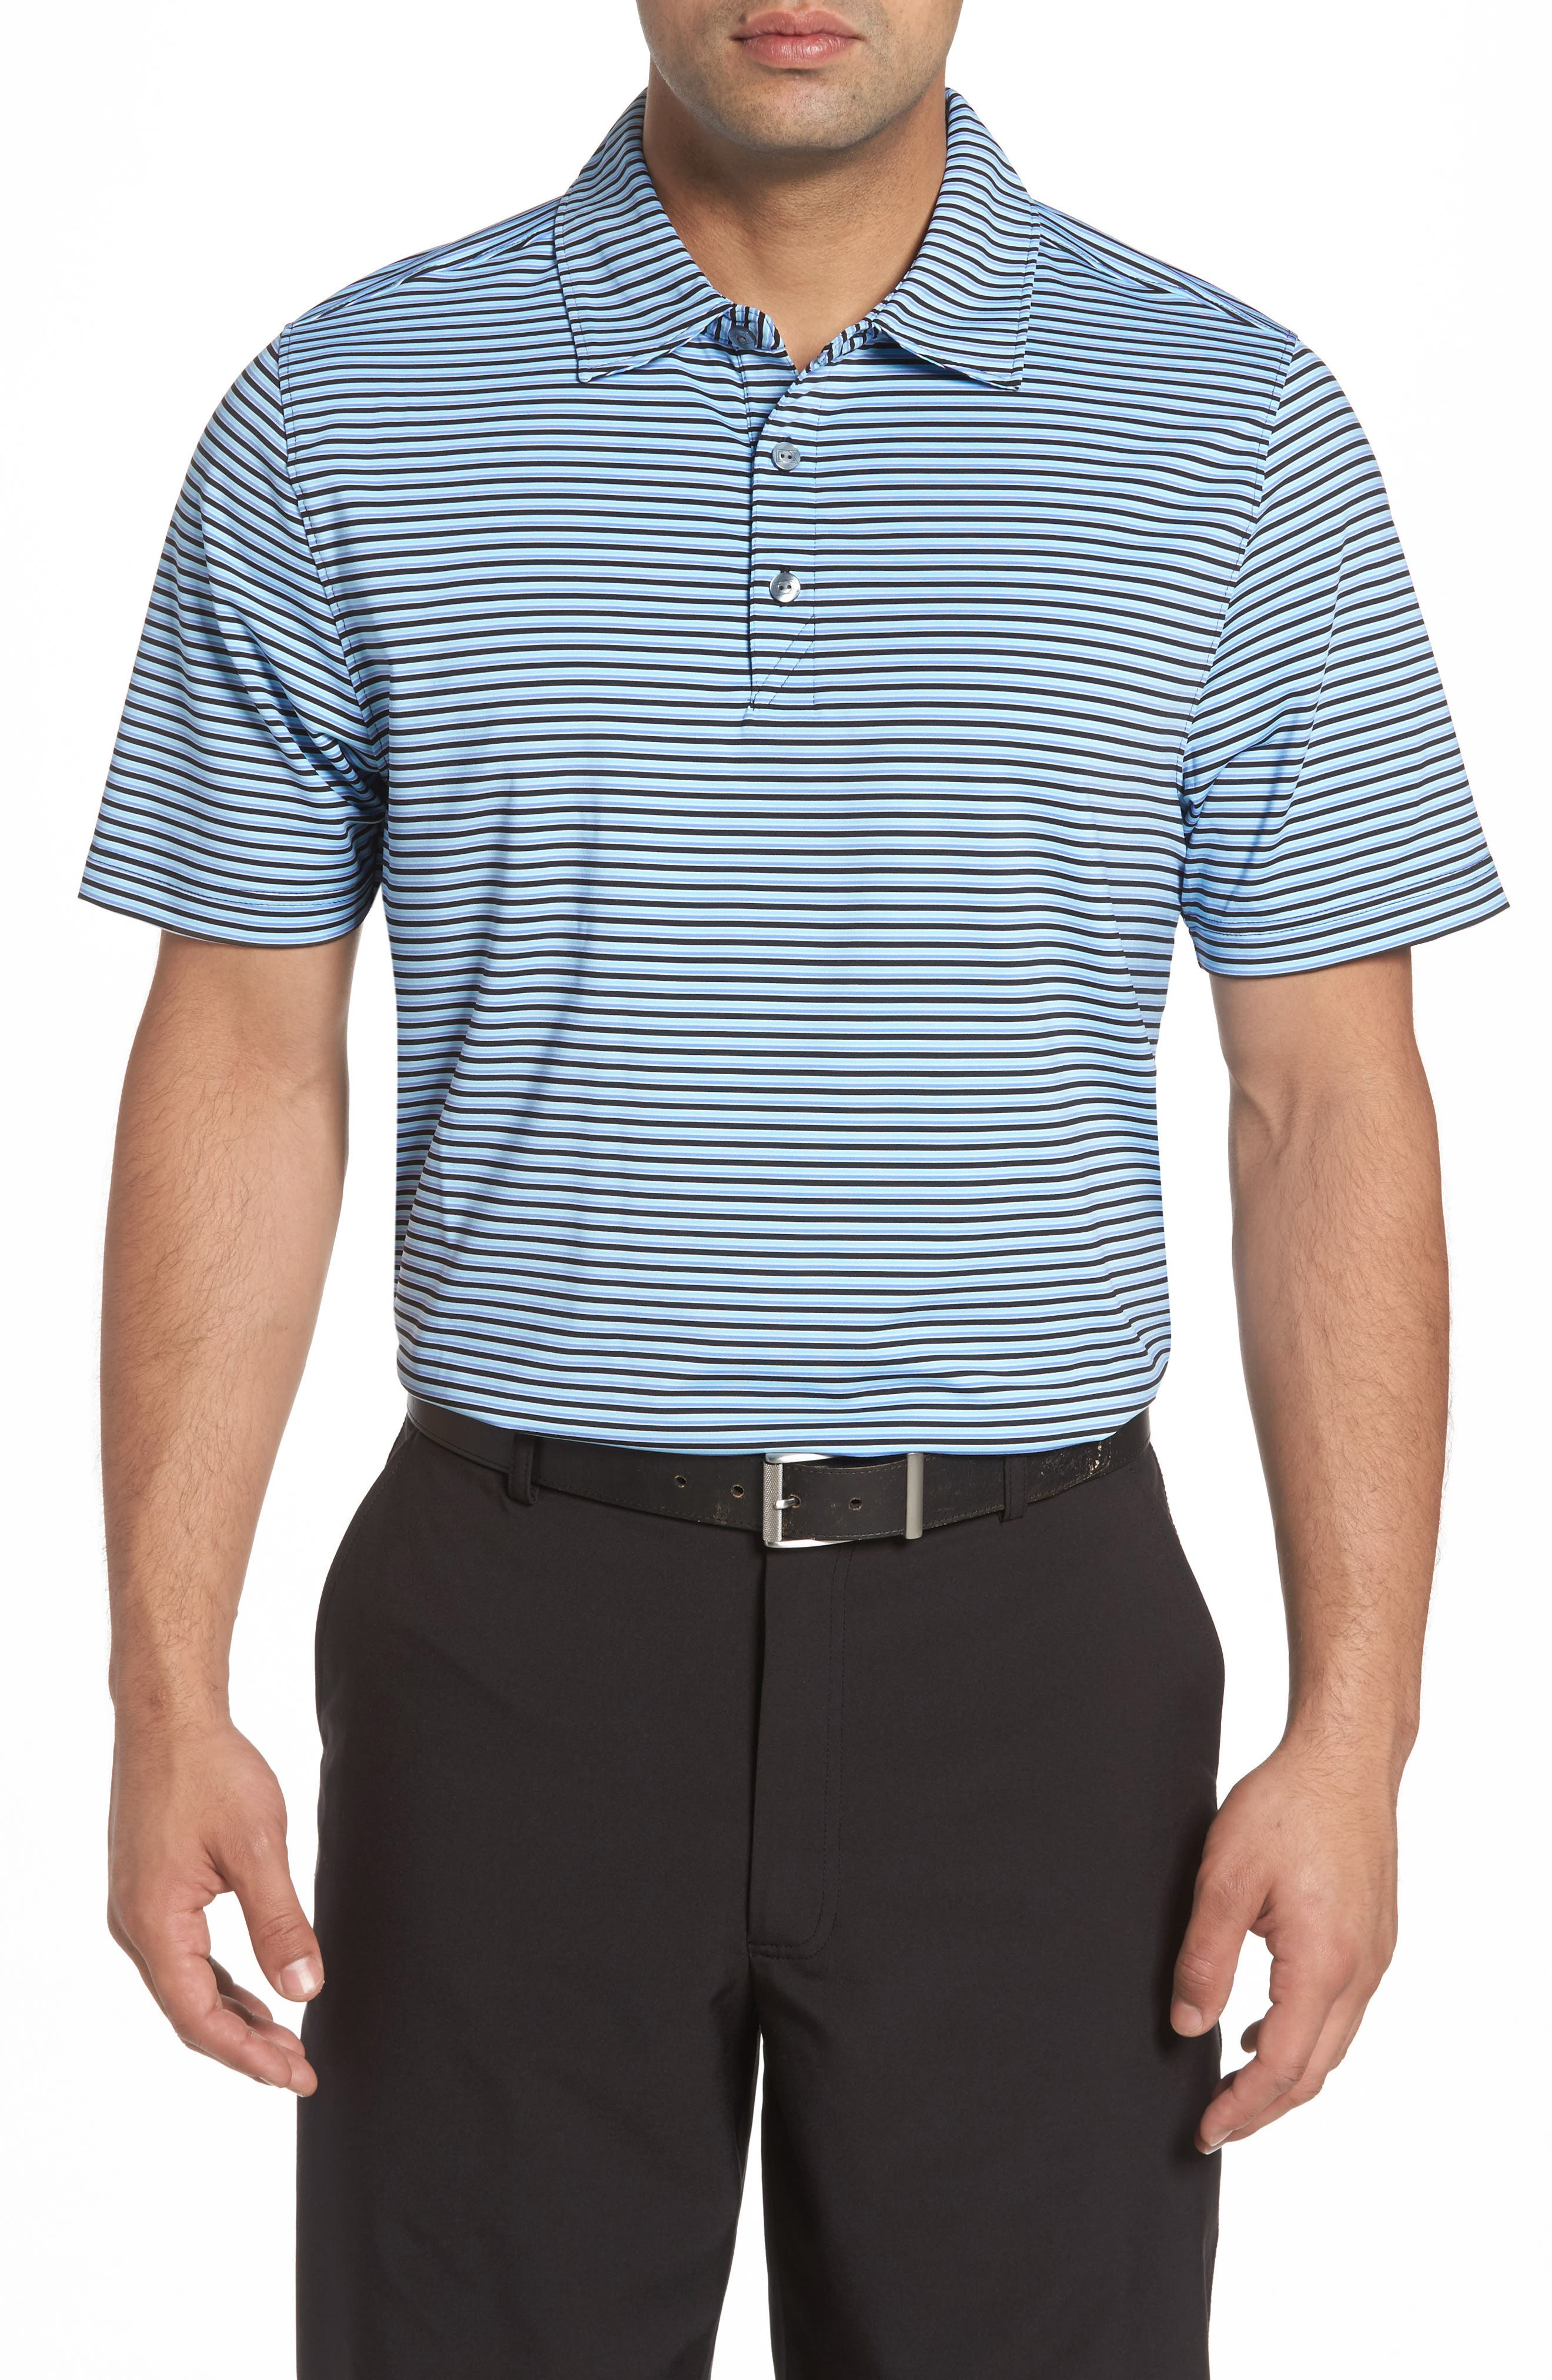 Alternate Image 1 Selected - Cutter & Buck Division Stripe Jersey Polo